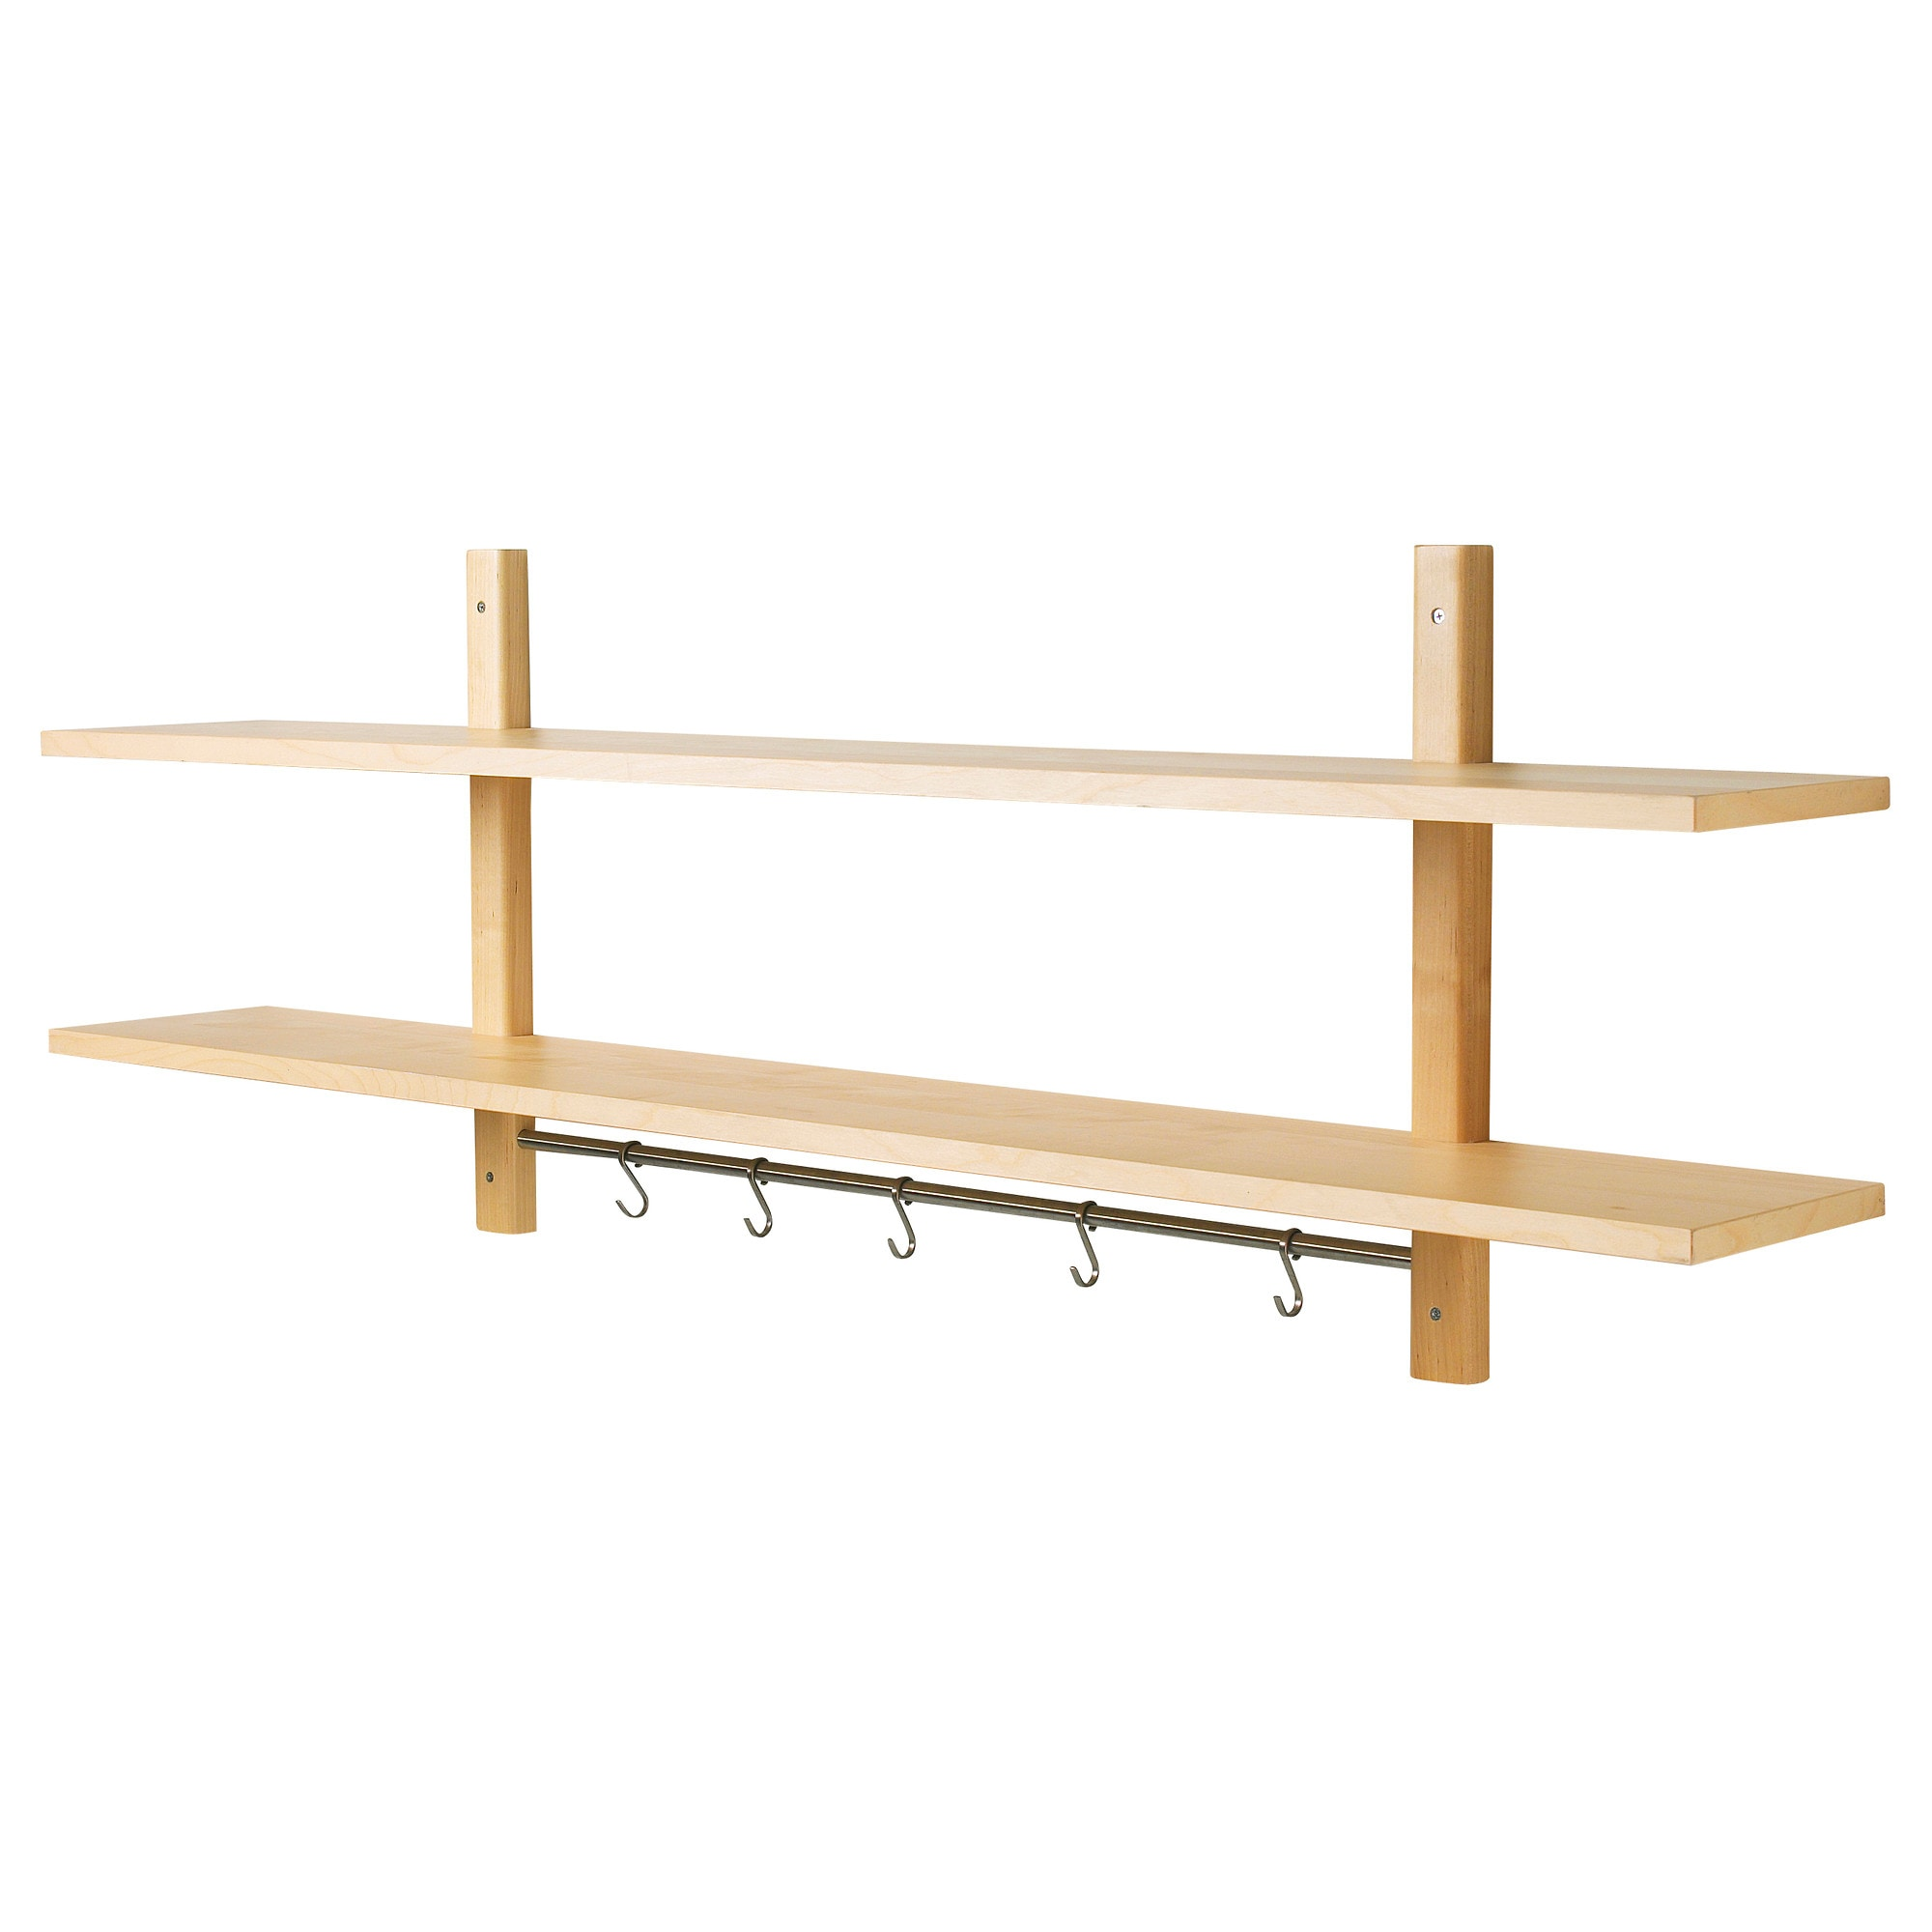 Ikea varde wall kitchen shelf with 5 hooks solid birch ebay - Etagere murale pour dvd ...